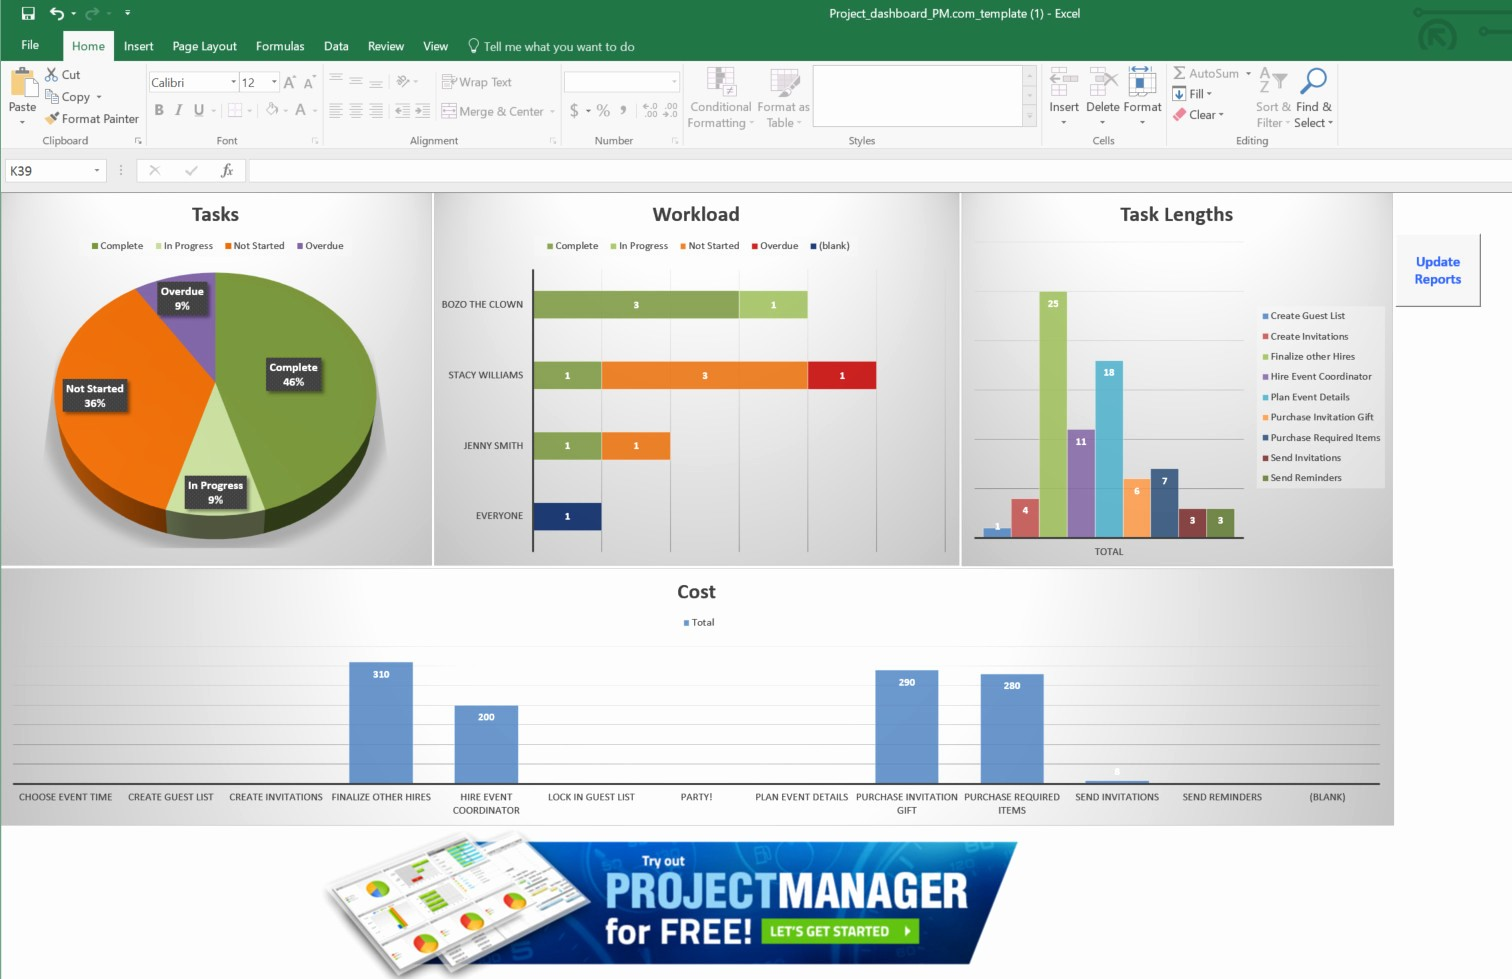 Project Management Template Excel Free New Project Dashboard Excel Template Free Download Project